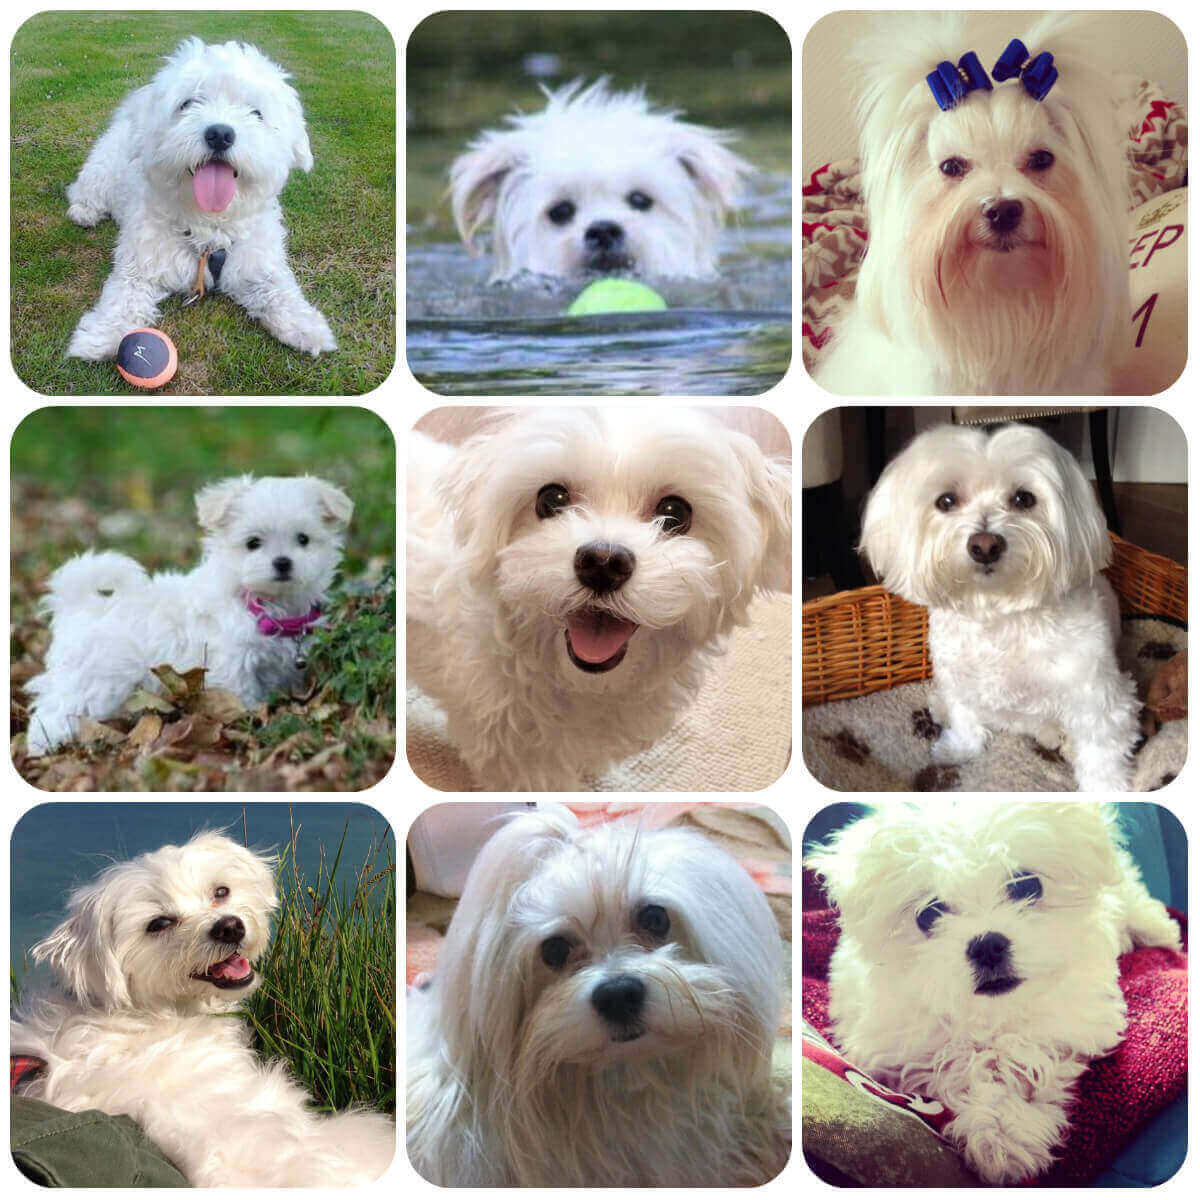 a collage of maltese dogs and puppies